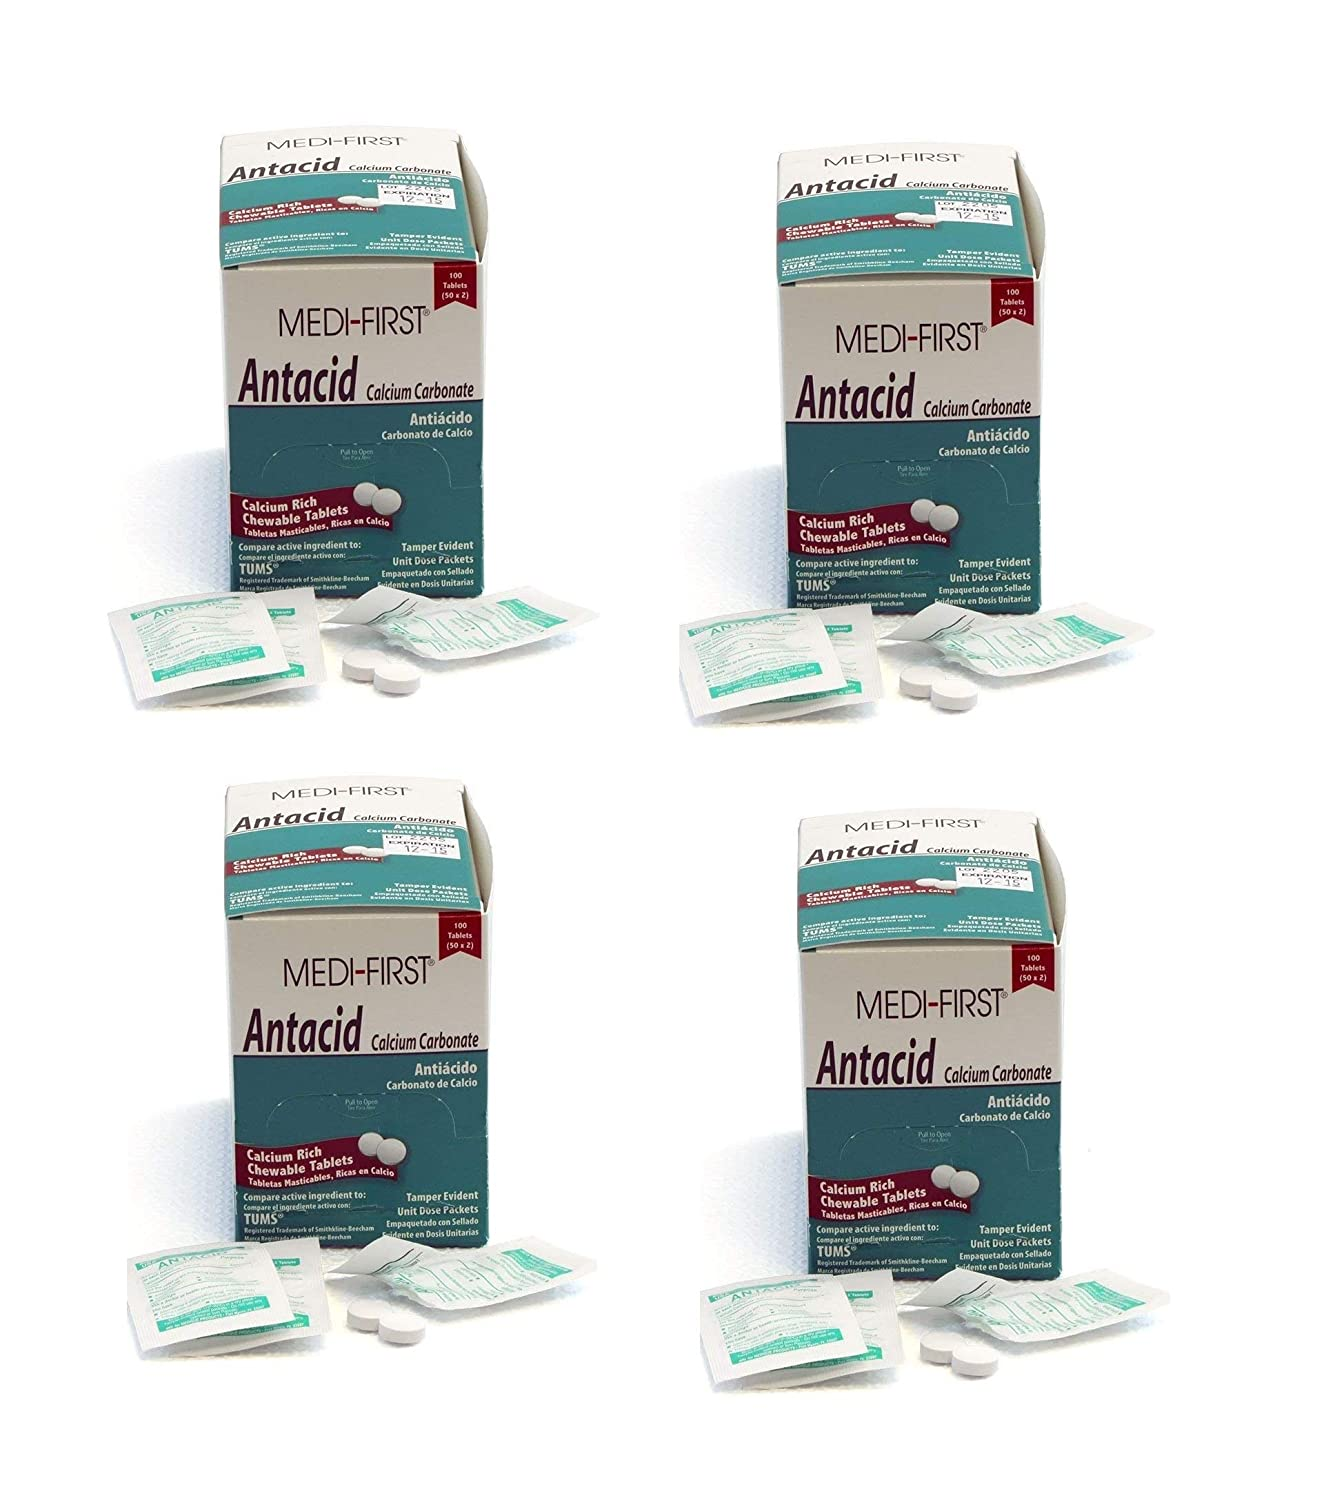 Amazon.com: Medi-First 80233 Chewable Mint Antacid Tablets, 50 Count (3 Pack): Health & Personal Care